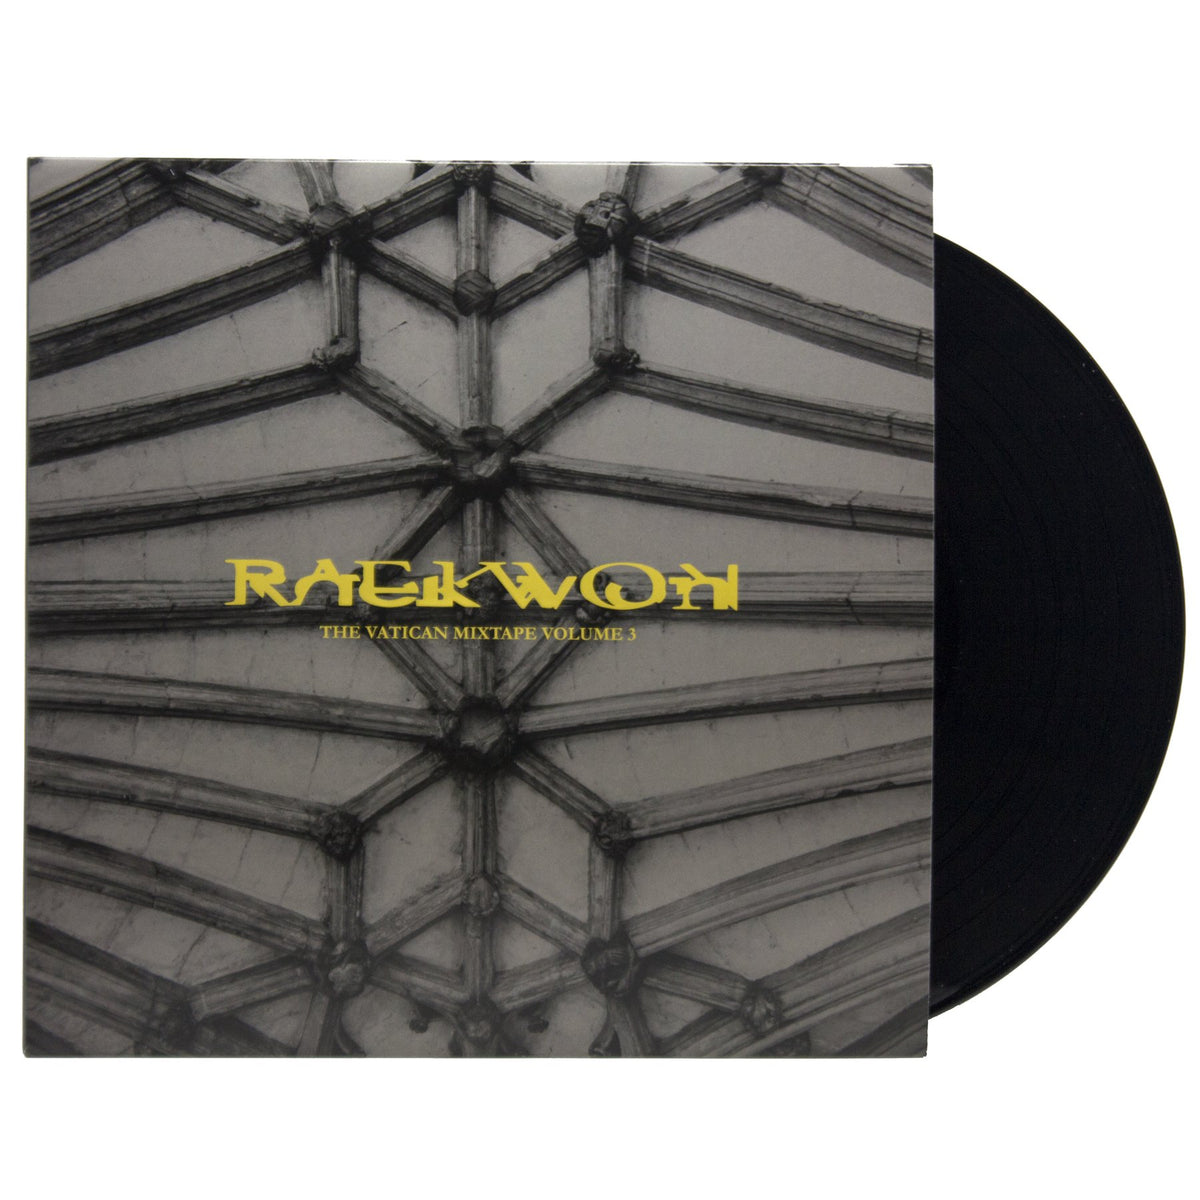 Raekwon: The Vatican Mixtape Vol.3 Vinyl 2LP (Record Store Day)